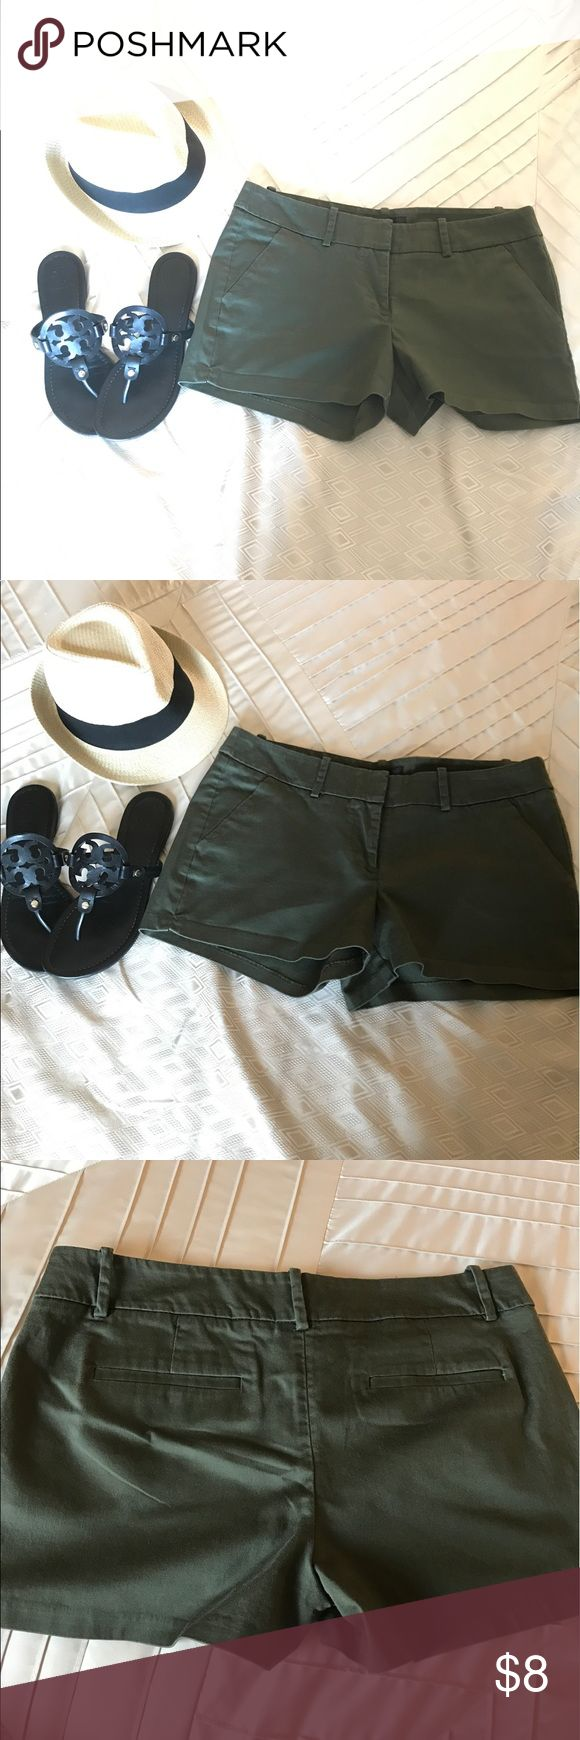 Mossimo olive green shorts Olive green mossimo shorts size 10, perfect condition! Mossimo Supply Co Shorts